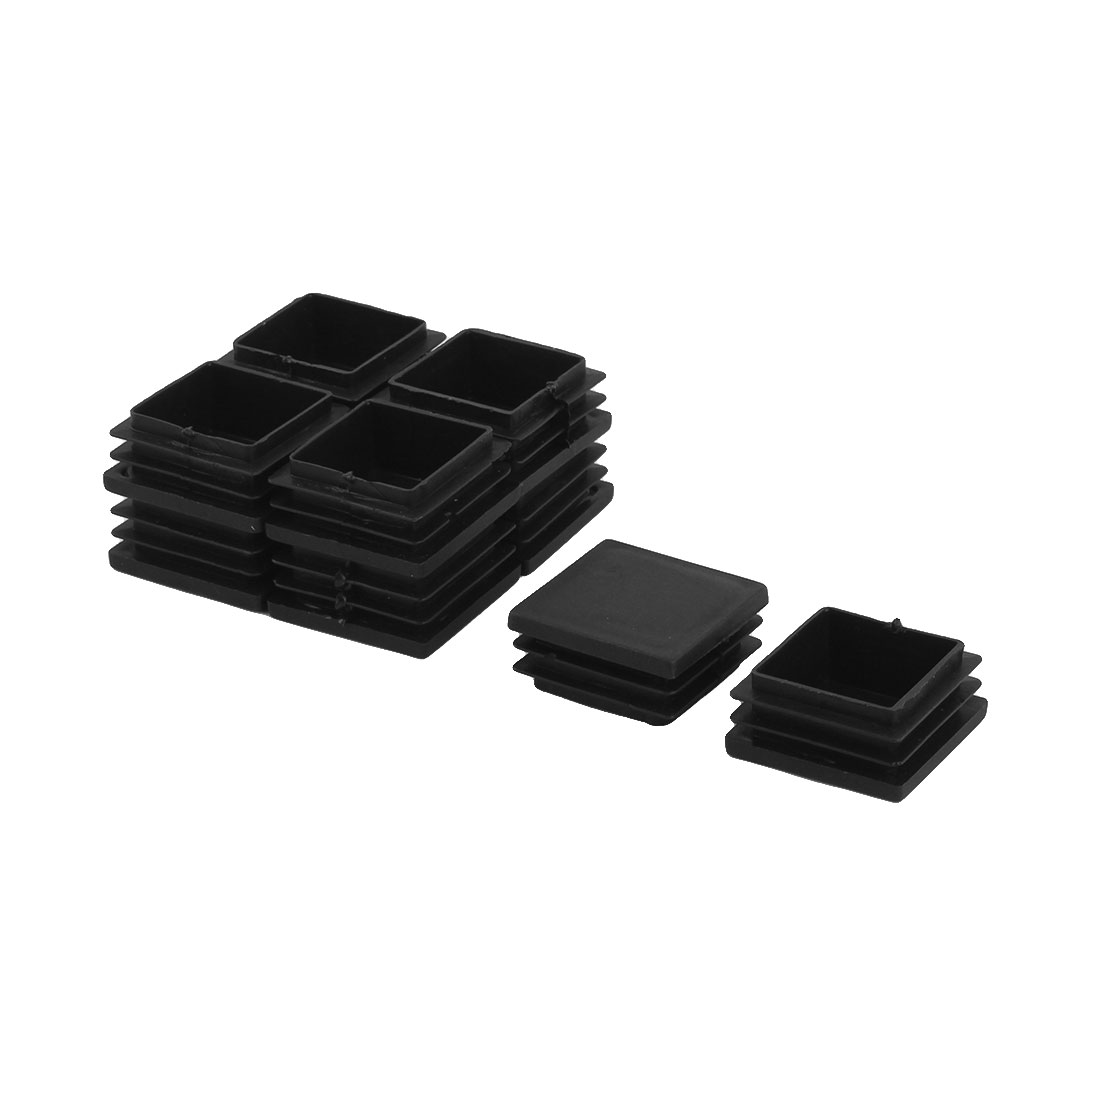 Home Office Plastic Square Table Chair Legs Tube Insert Black 40 x 40mm 10 PCS